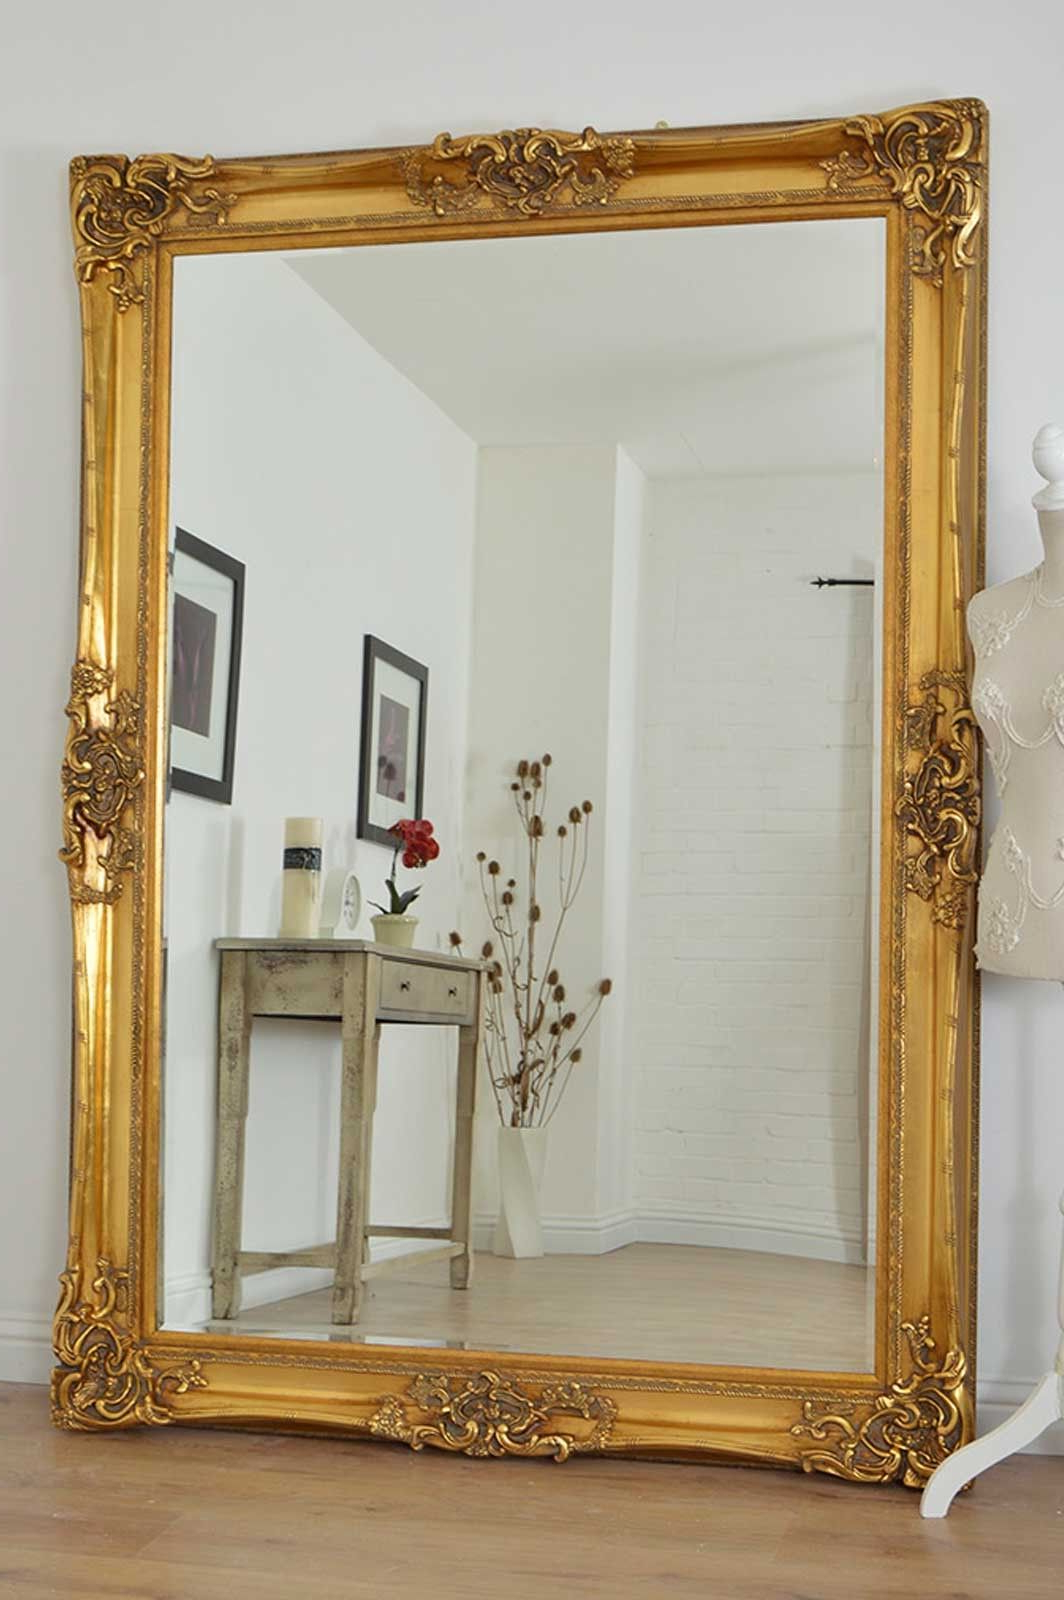 Latest Large Gold Very Ornate Antique Design Wall Mirror 7Ft X 5Ft Inside Ornate Full Length Wall Mirrors (Gallery 11 of 20)